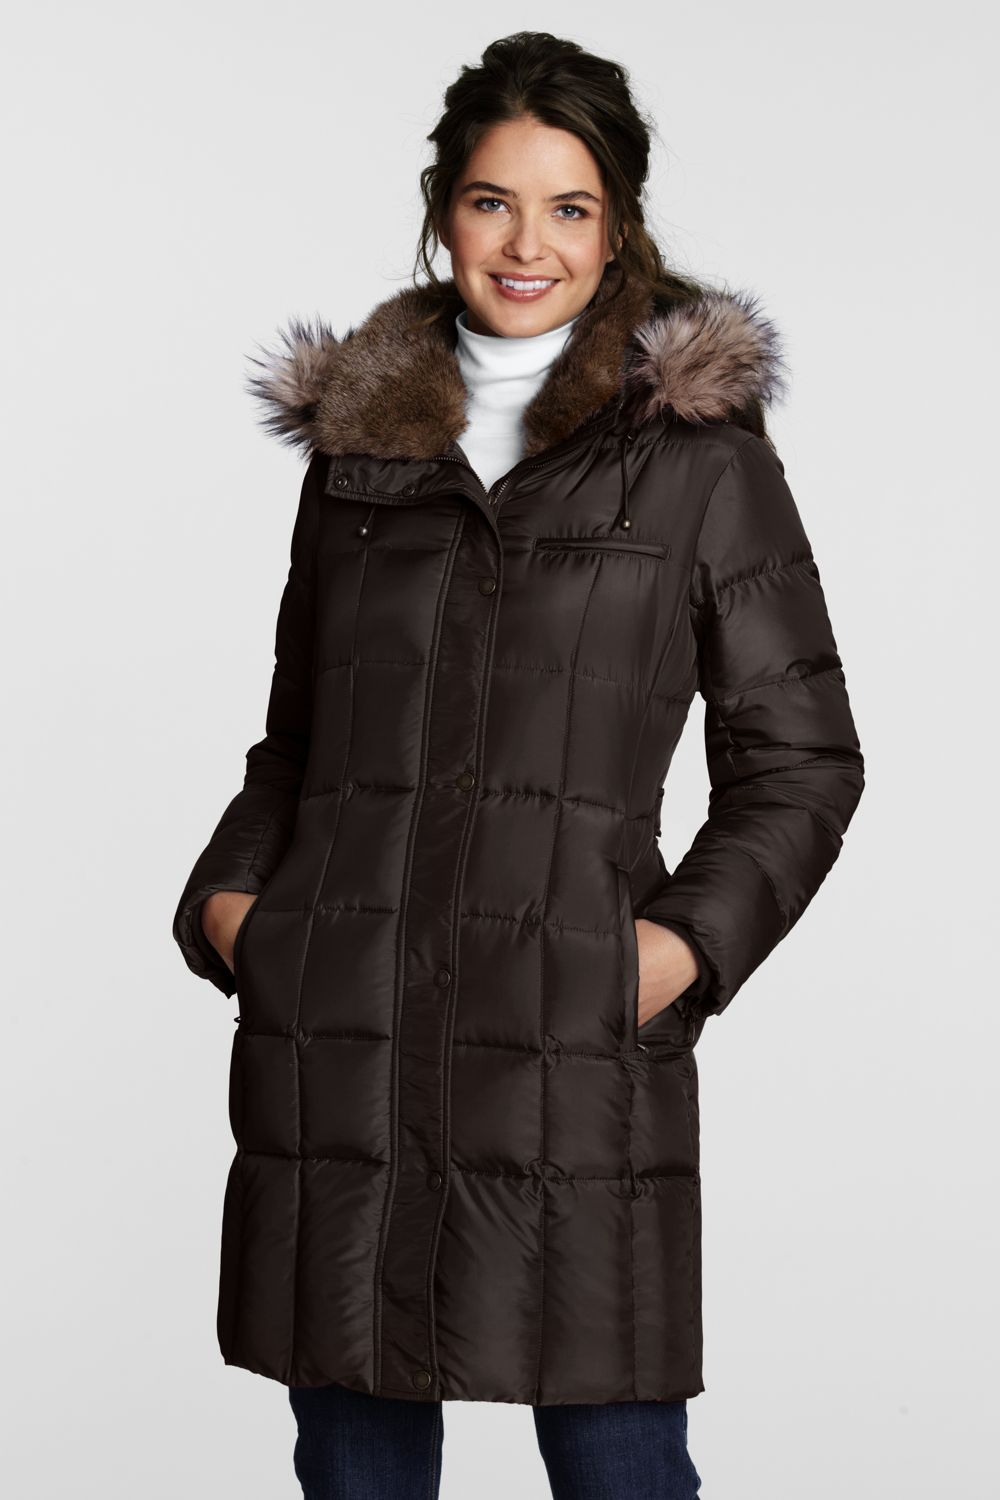 Shop Lands' End Women's Clothing. FREE Shipping on $50+ Orders. Shop Flannel Shirts, Sweaters, Turtlenecks, Pajamas, Dresses, Shoes & Accessories.